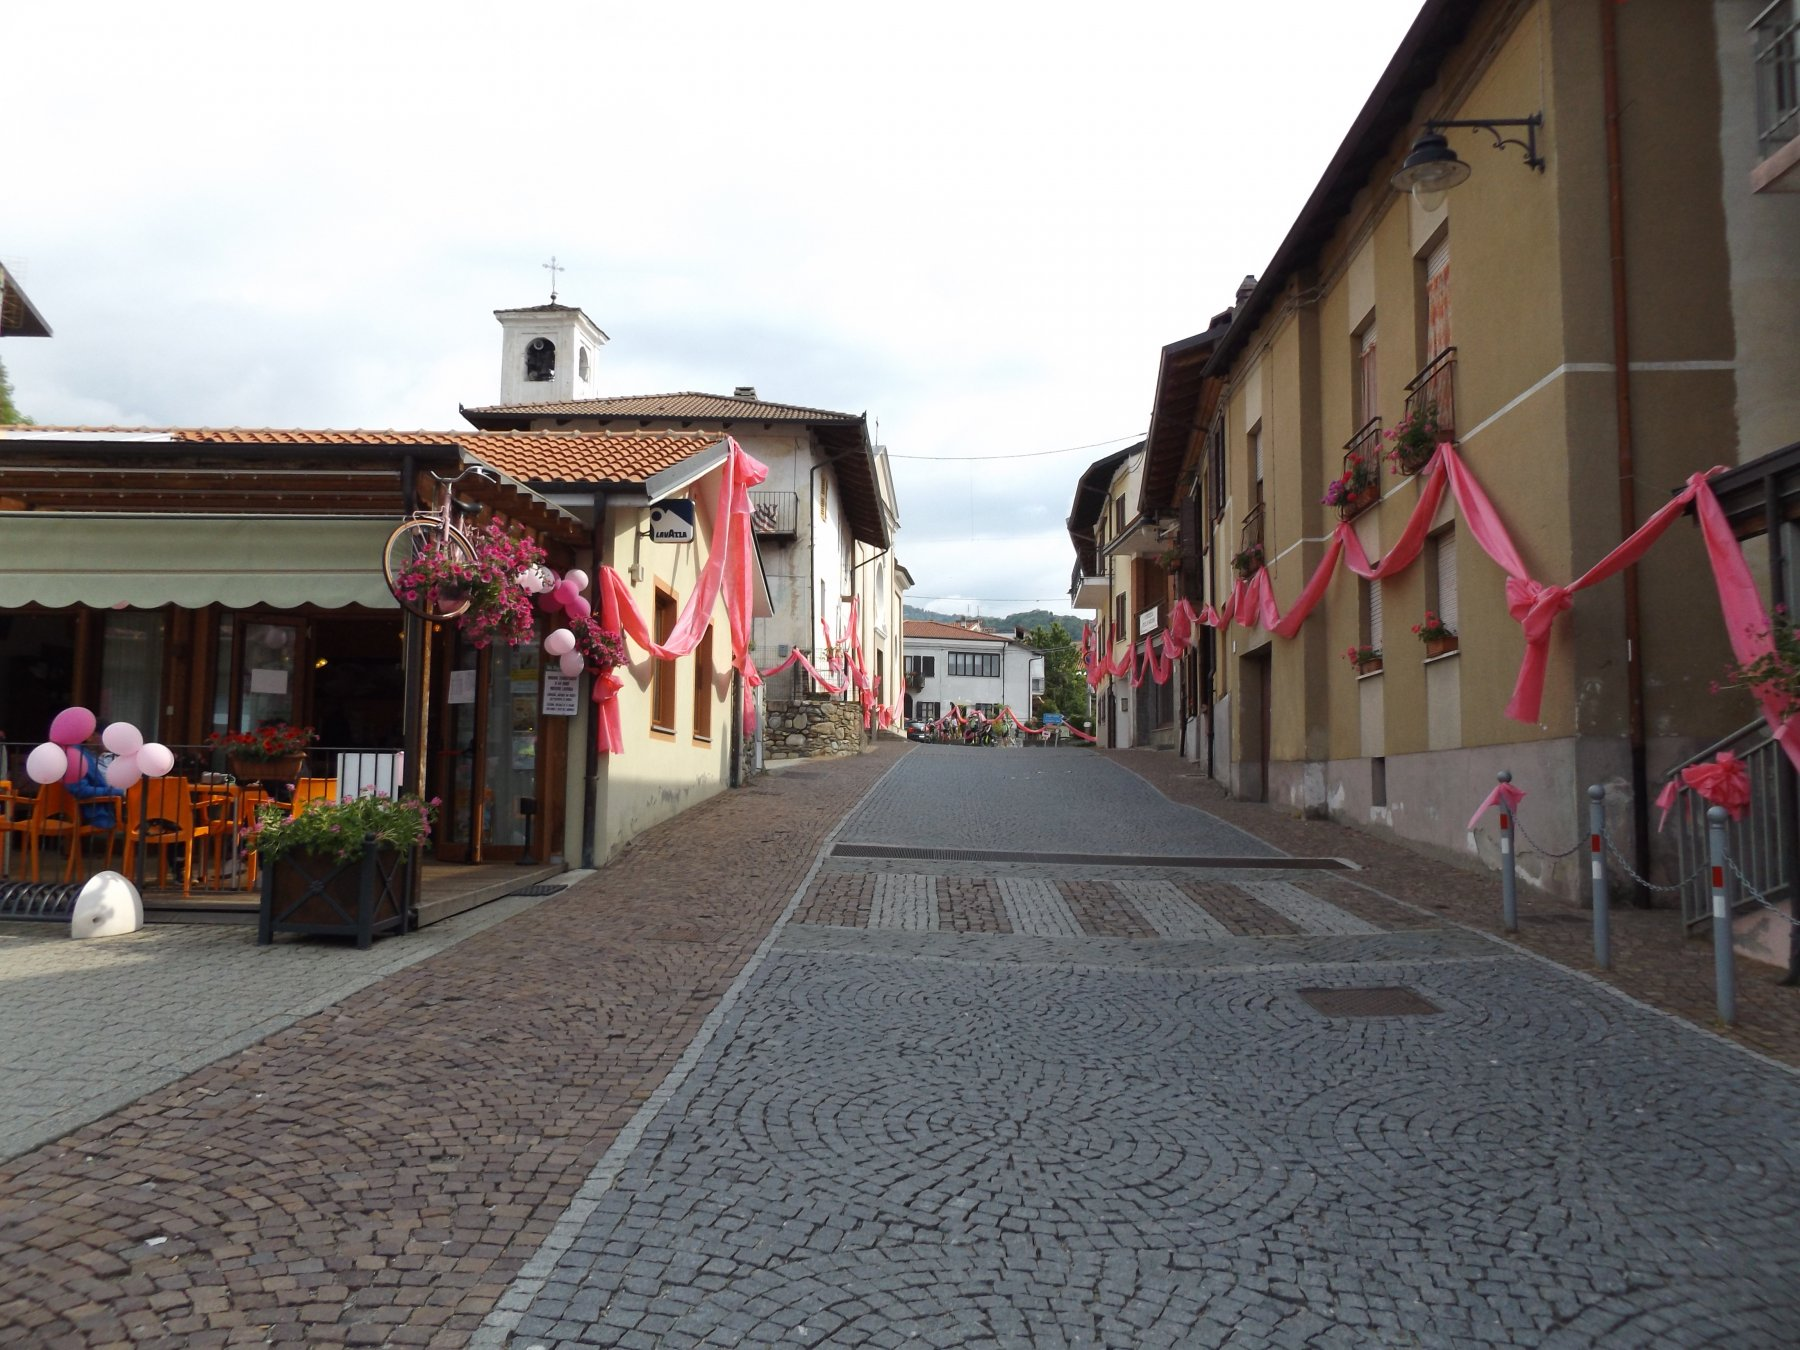 Colleretto in rosa